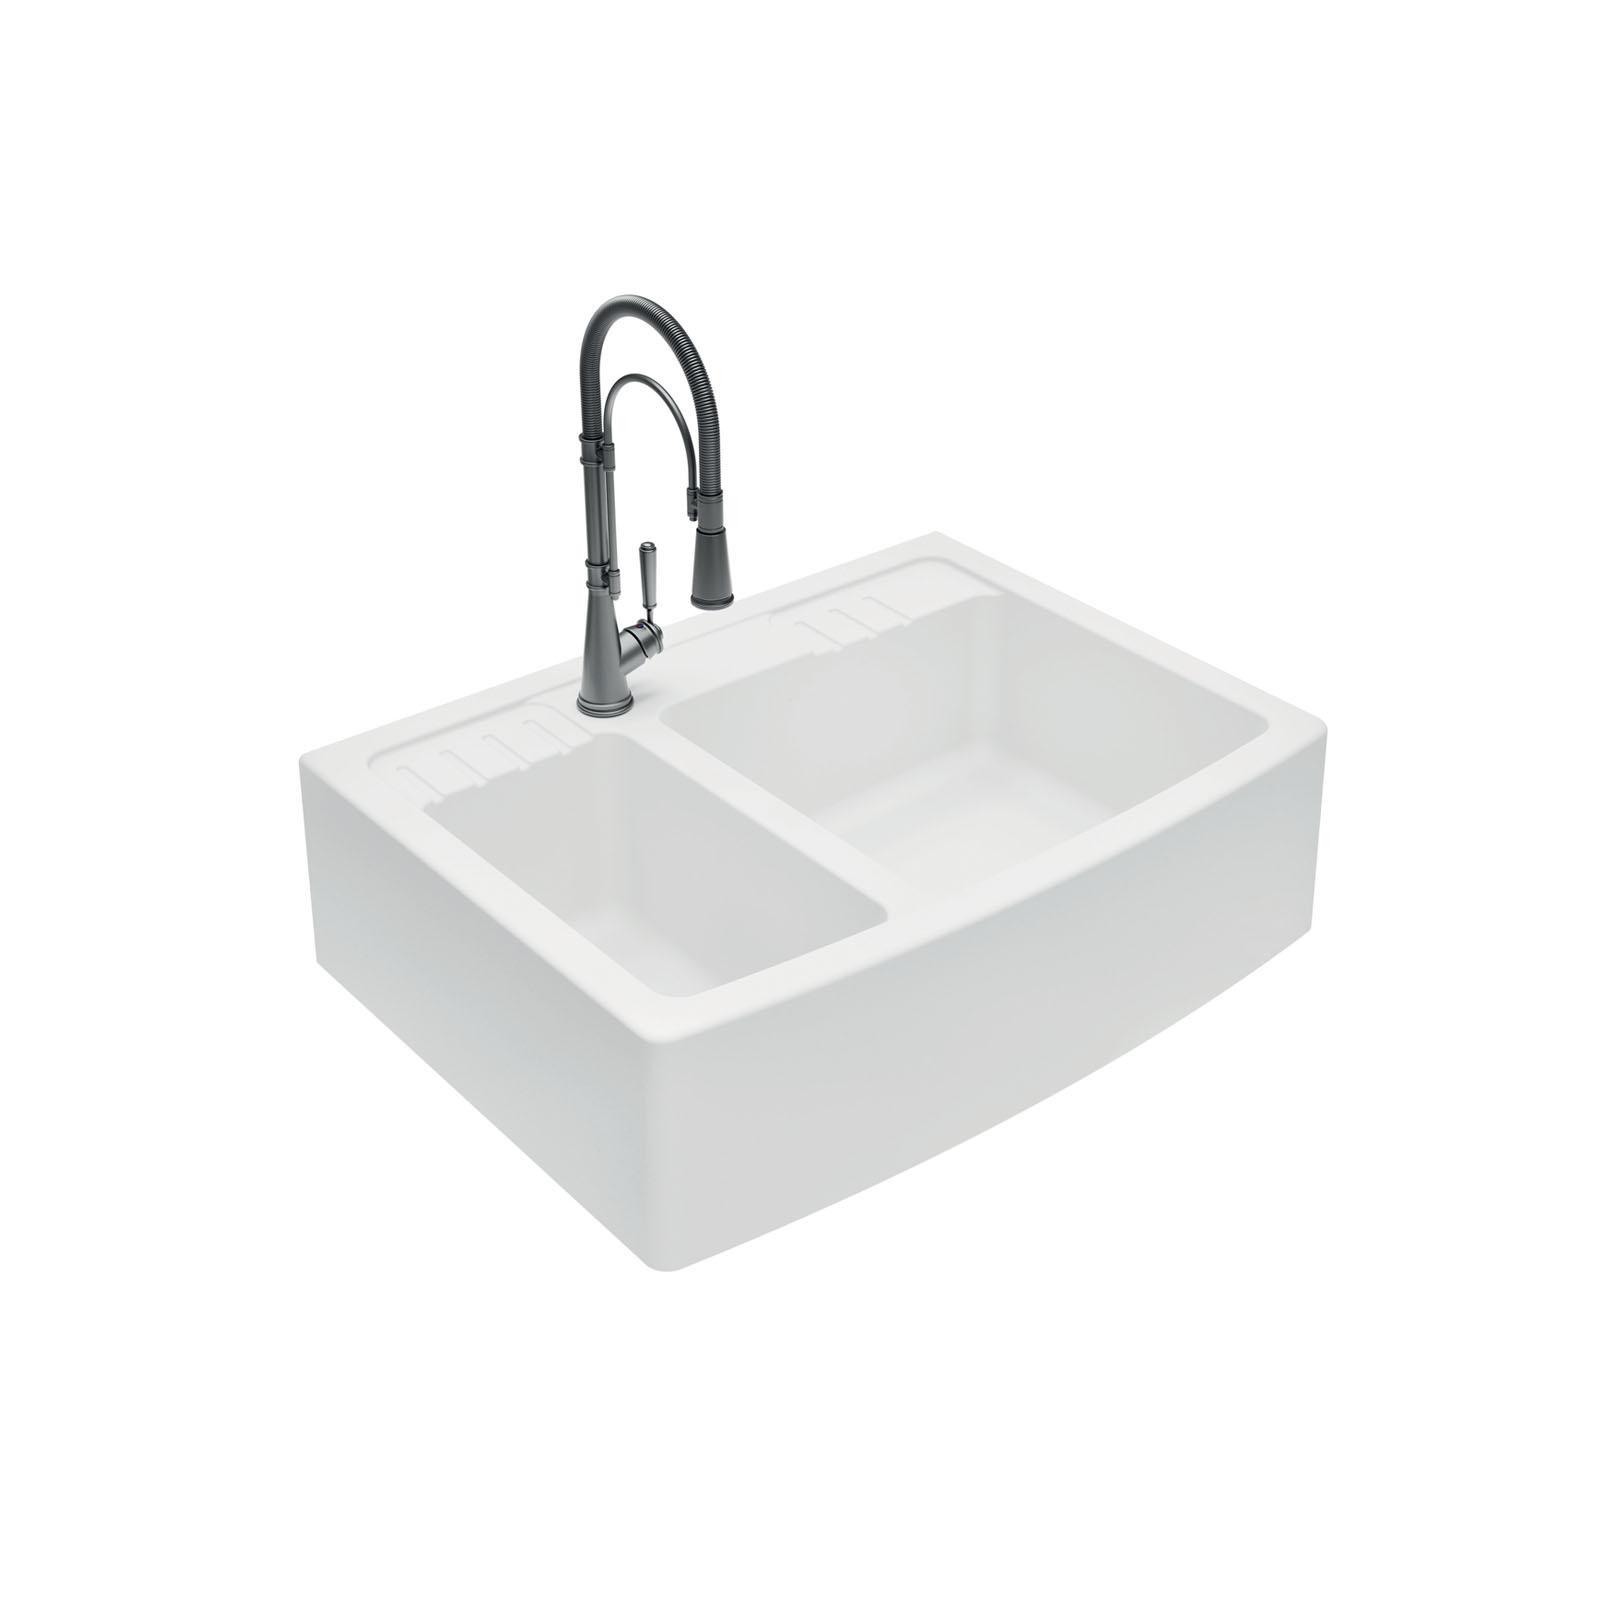 High-quality sink Clotaire III granit white - one and a half bowl - ambience 2